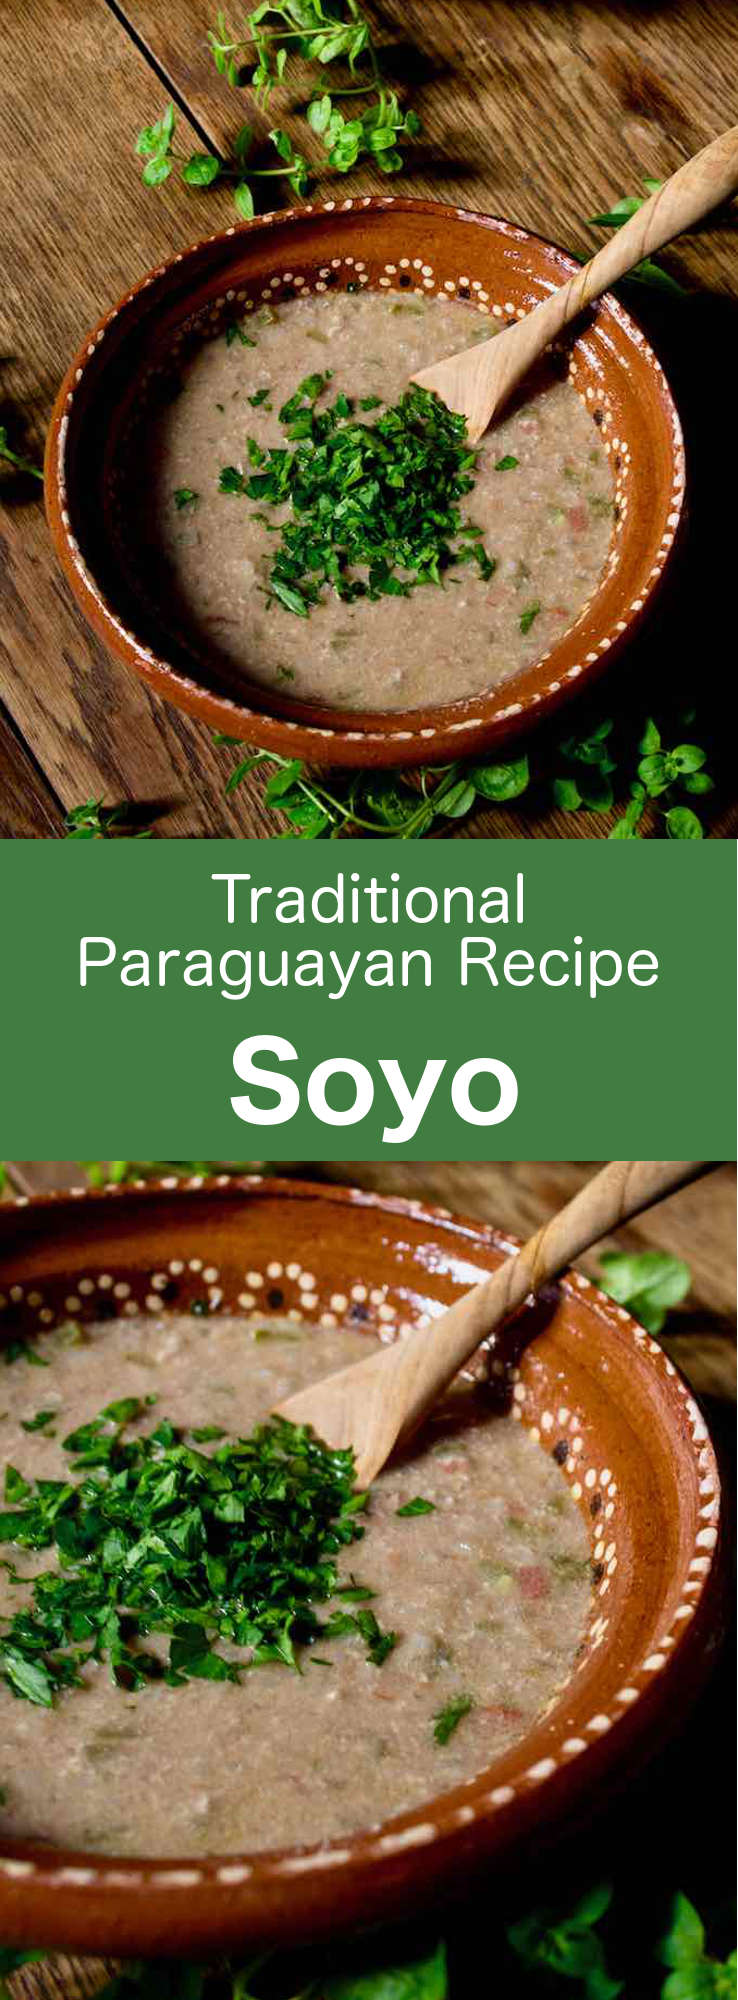 Soyo is a delicious traditional soup with ground beef and vegetables. A typical recipe of the cuisine of the Guarani people in Paraguay, this soup is usually consumed with Paraguayan tortillas or chipa guazu. #Paraguay #ParaguayanCuisine #ParaguayanRecipe #LatinAmericanCuisine #LatinAmericanRecipe #SouthAmericanCuisine #SouthAmericanRecipe #Guarani #GuaraniCuisine #WorldFlavors #196flavors